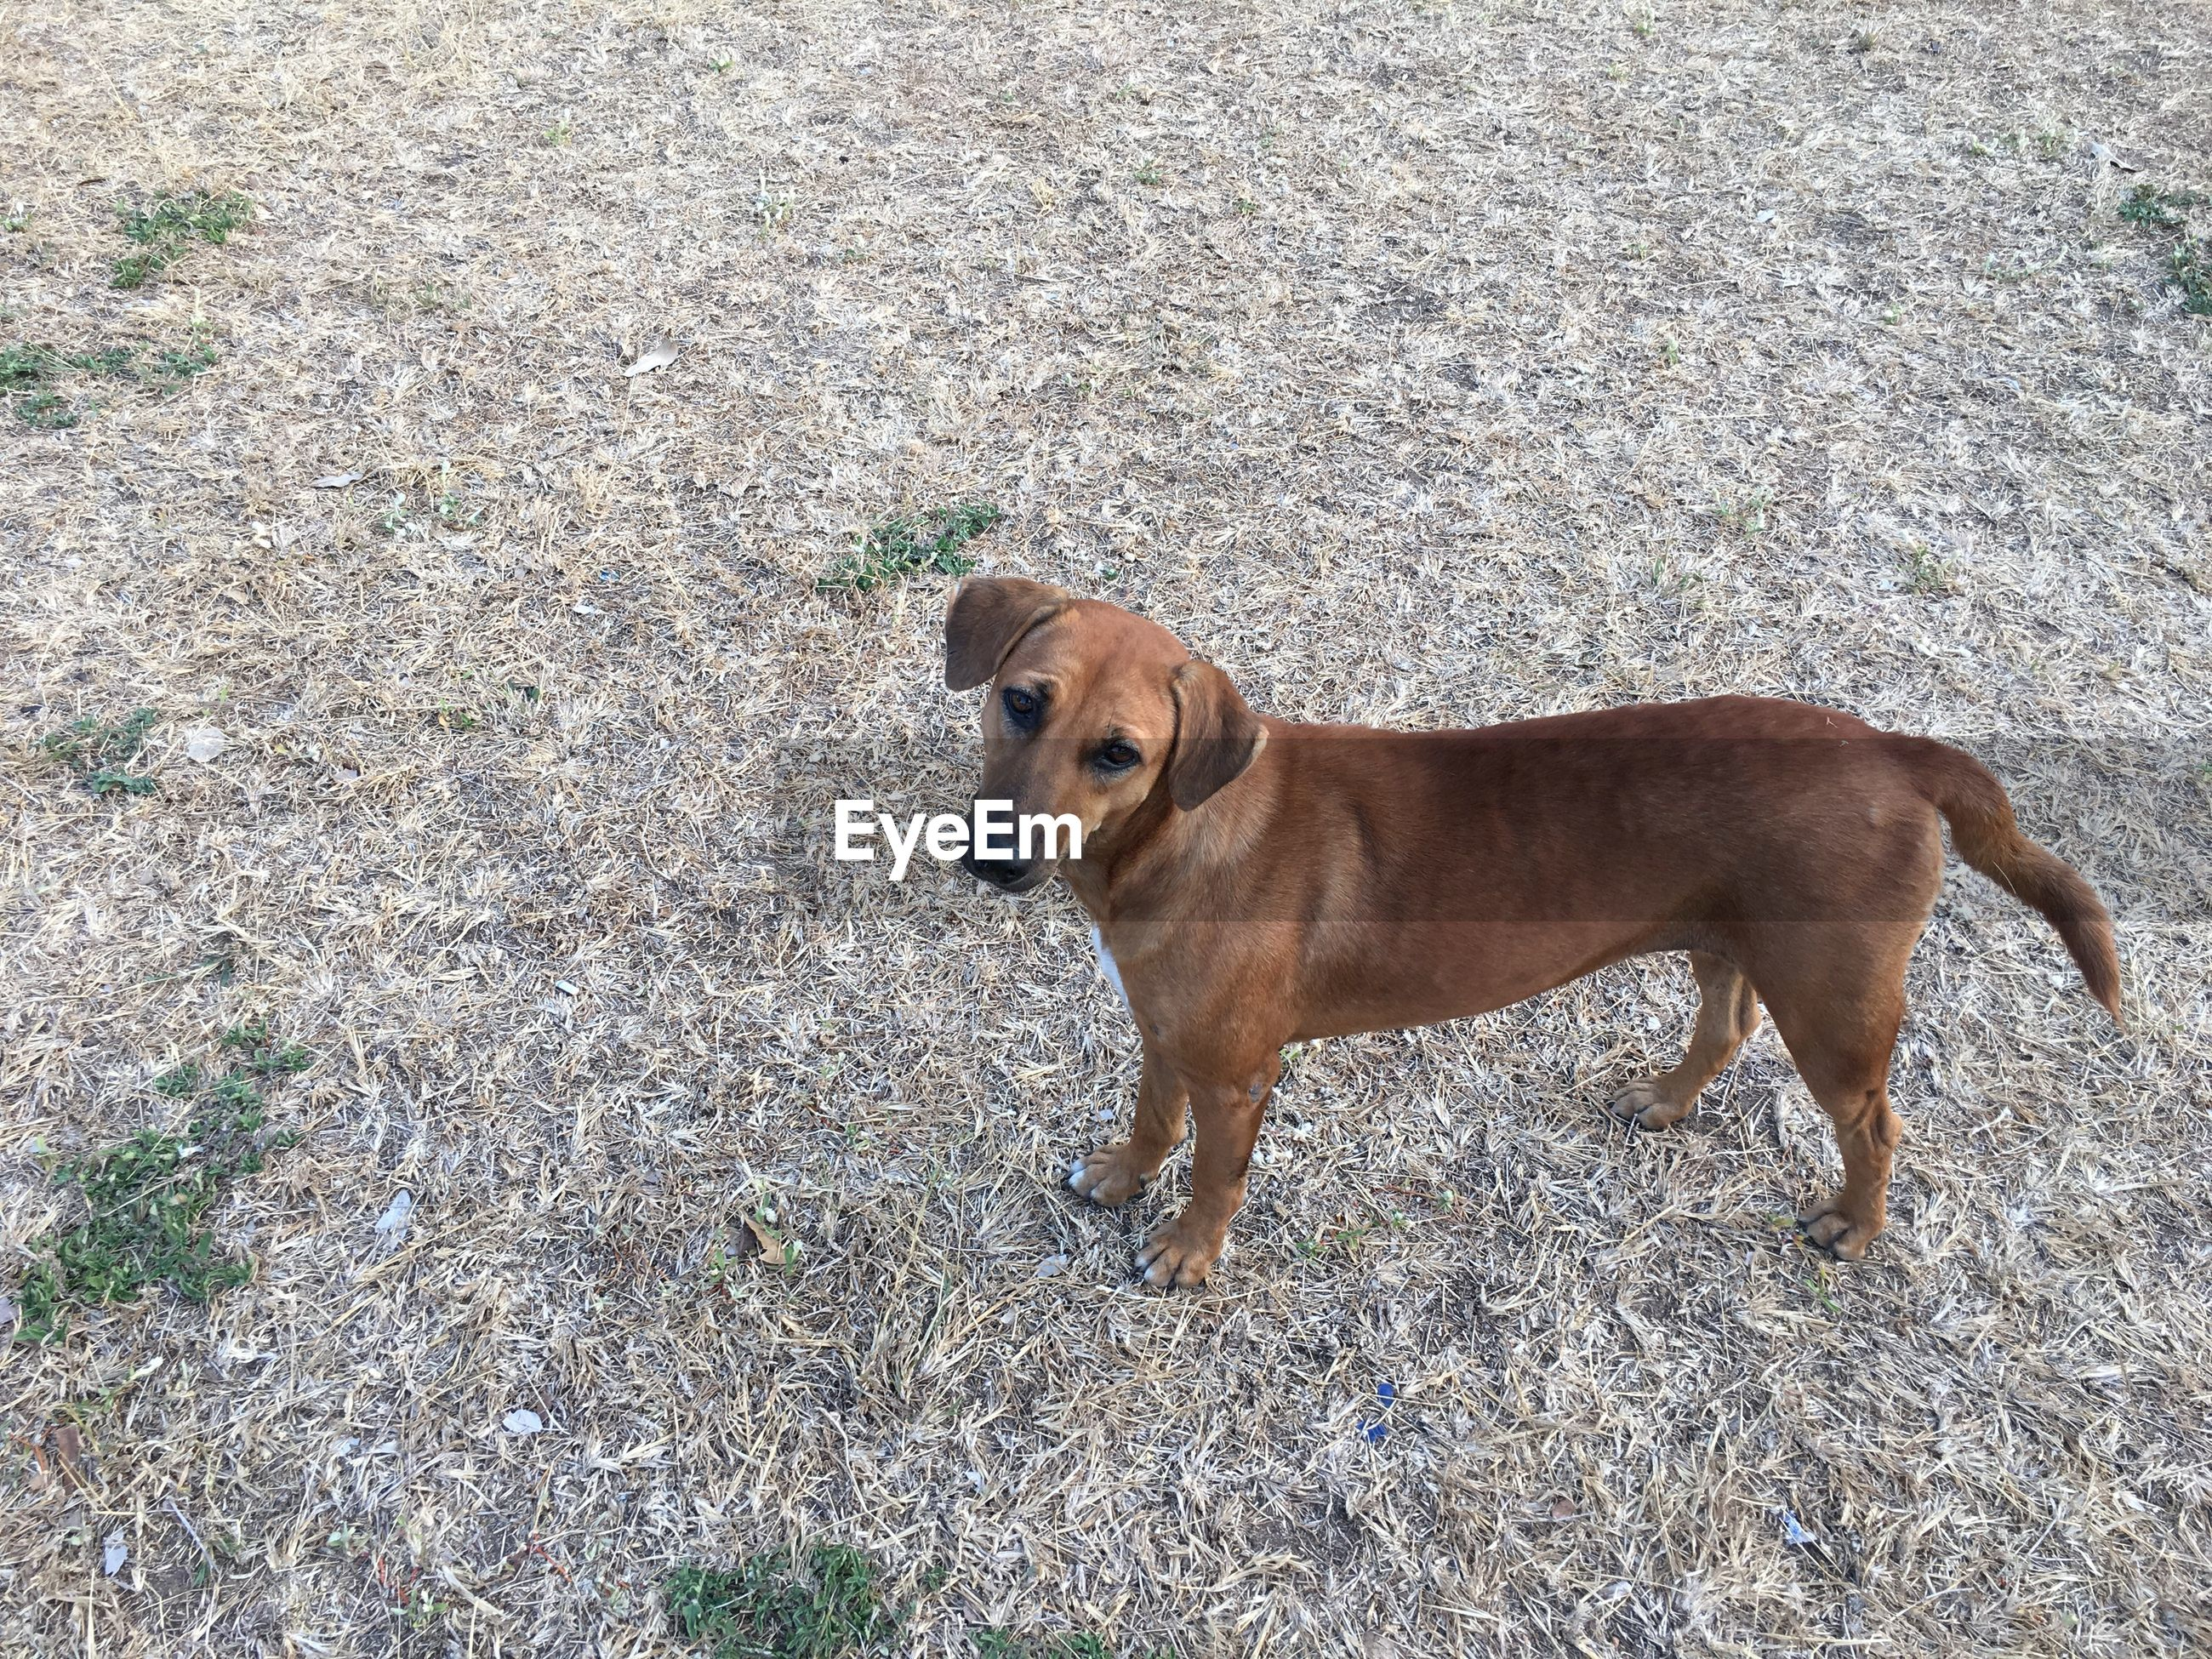 High angle view of dog standing on field